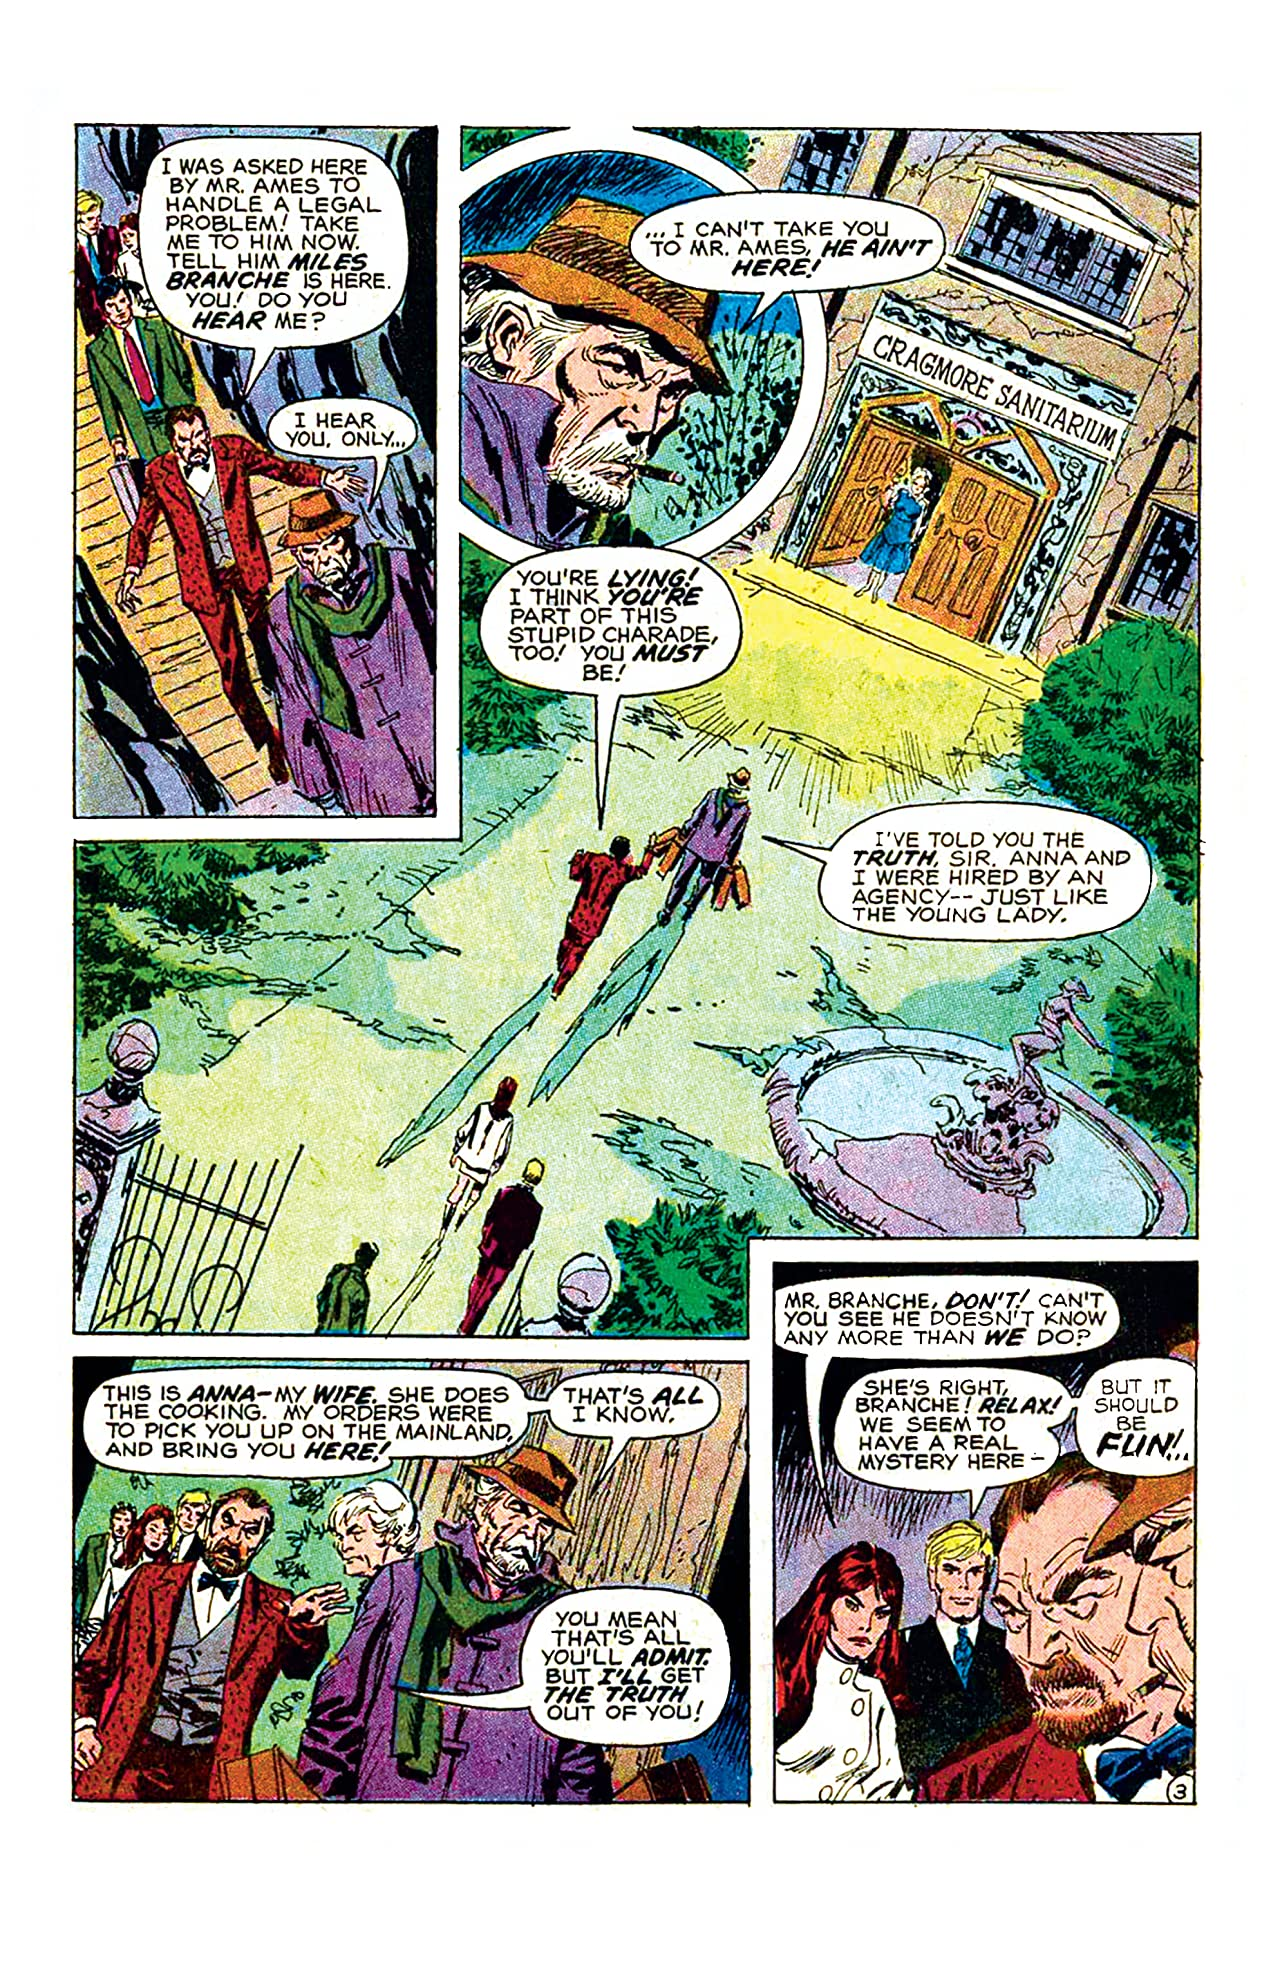 Forbidden Tales of Dark Mansion (1971-1974) #5